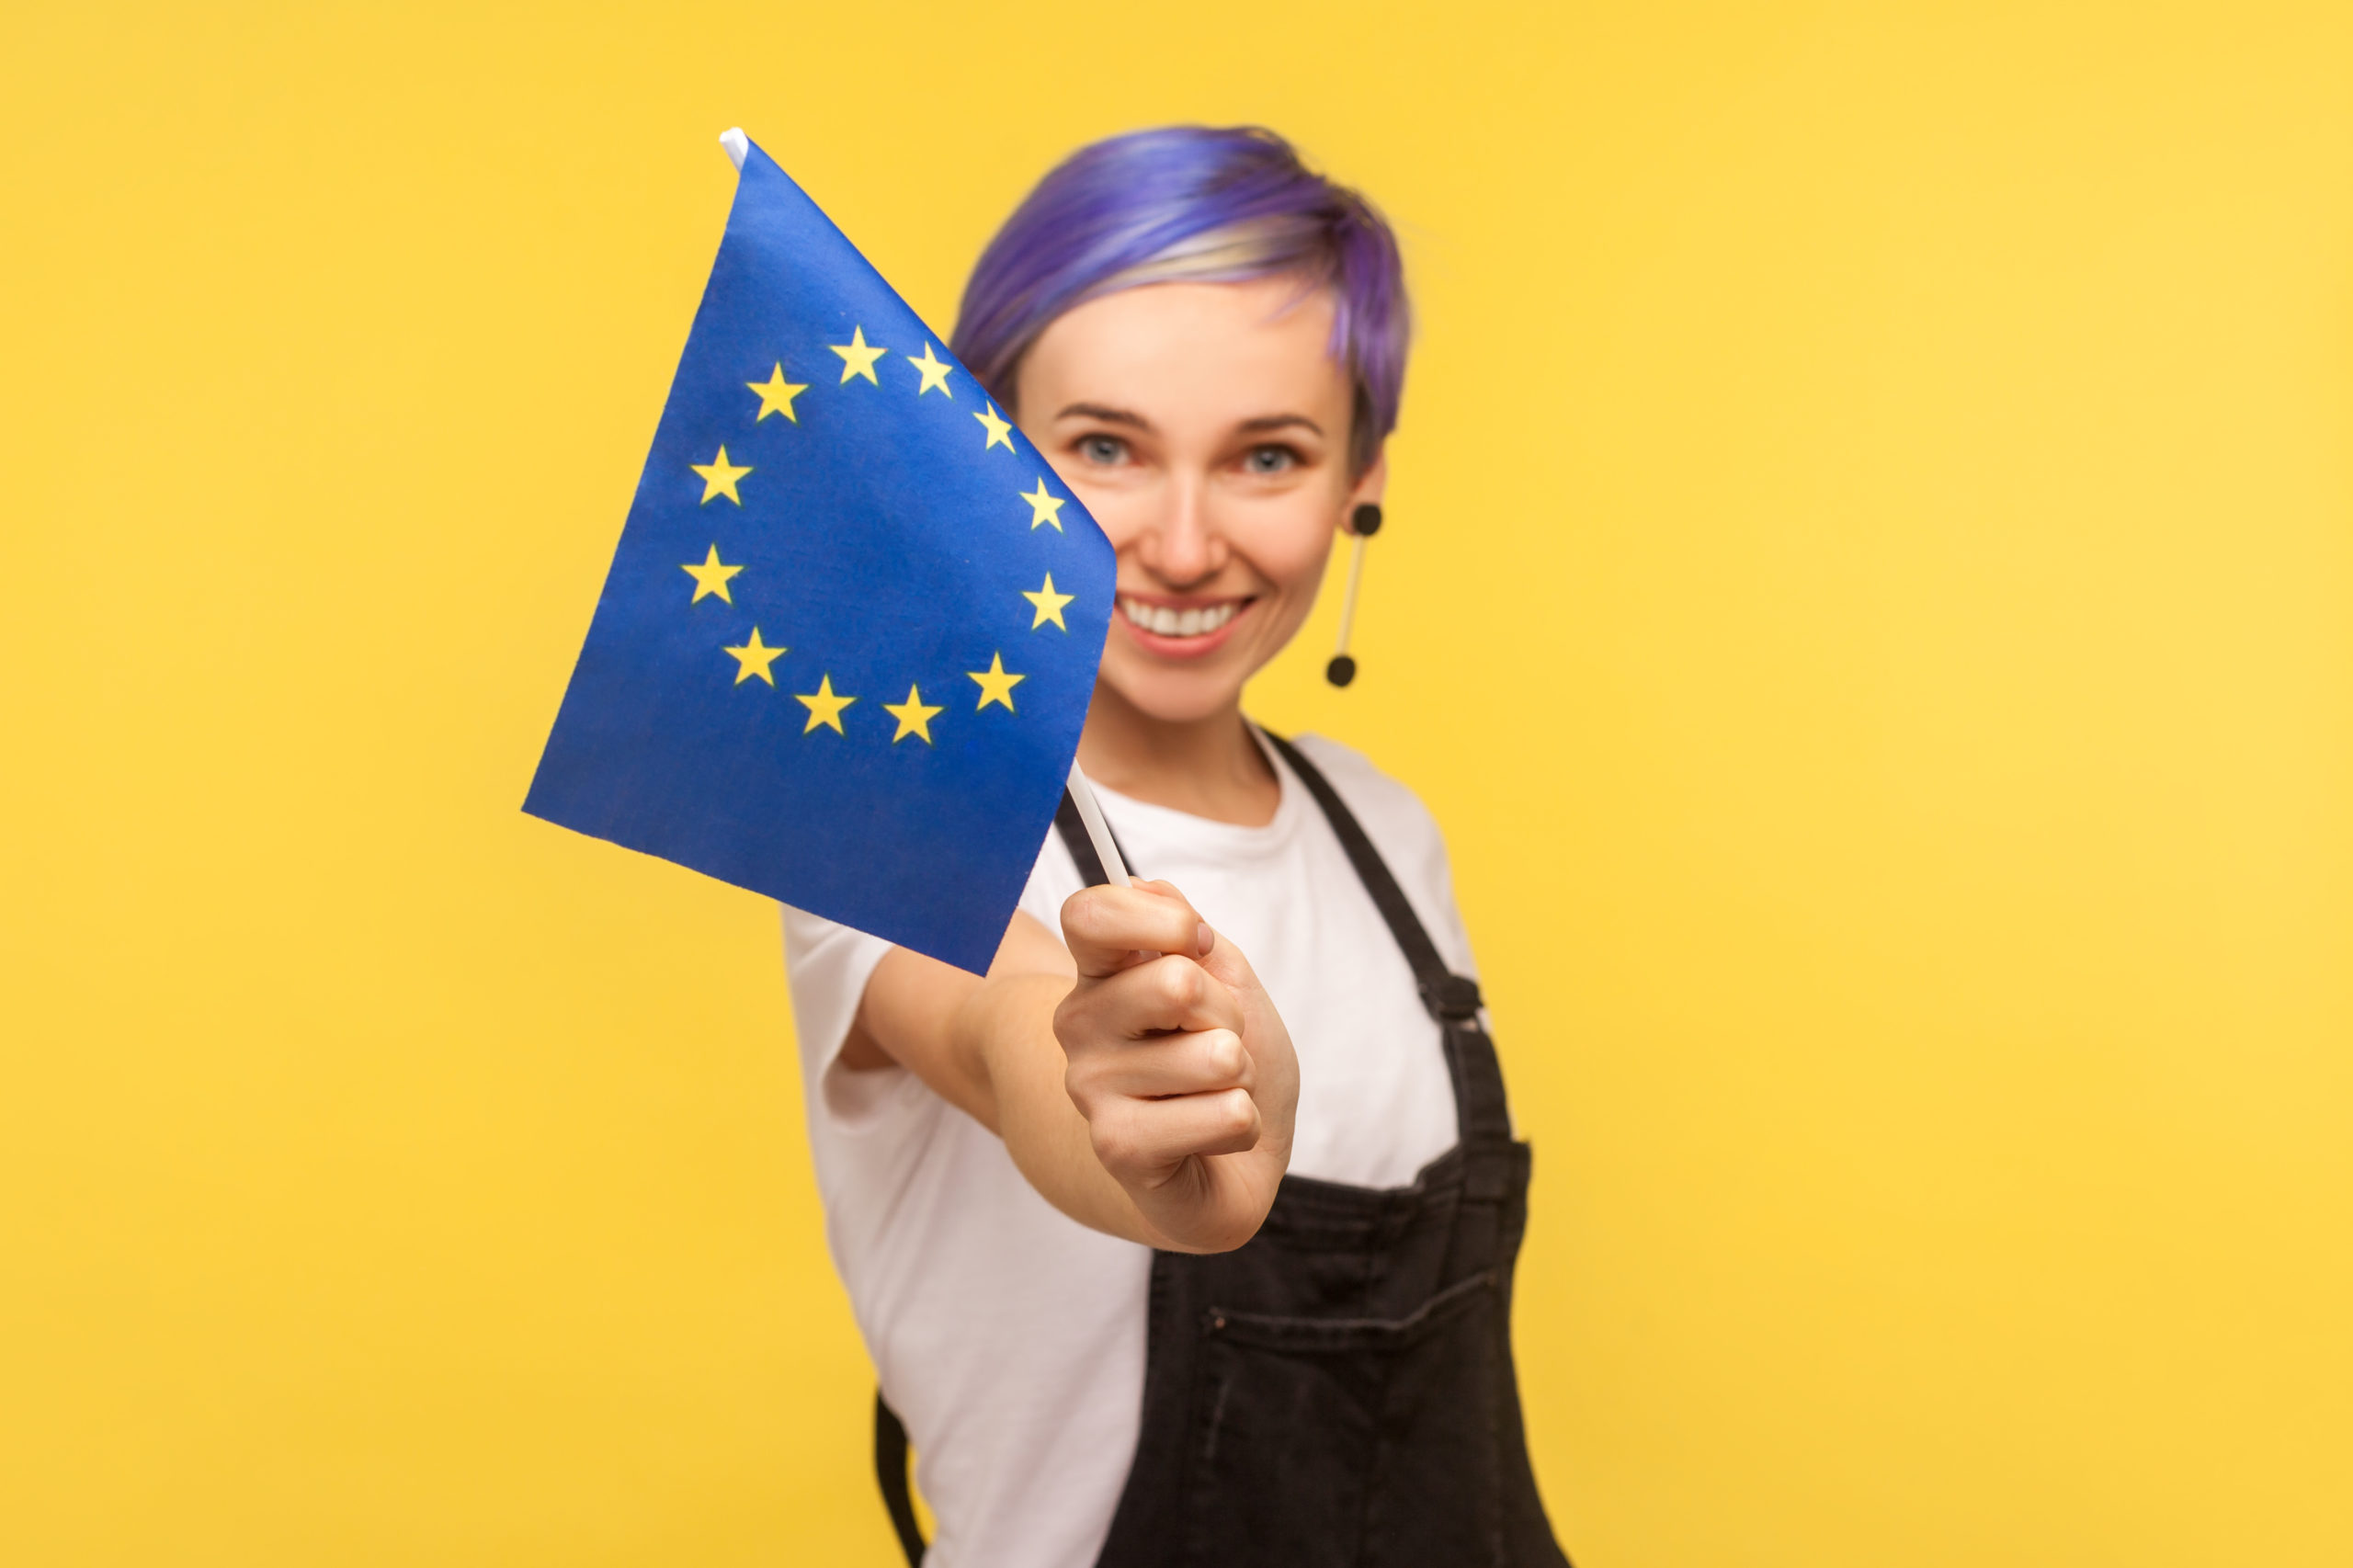 European Union Flag. Portrait Of Happy Joyful Hipster Girl With Violet Short Hair In Denim Overalls Holding Out Eu Flag To Camera And Smiling Genuinely. Isolated On Yellow Background, Studio Shot